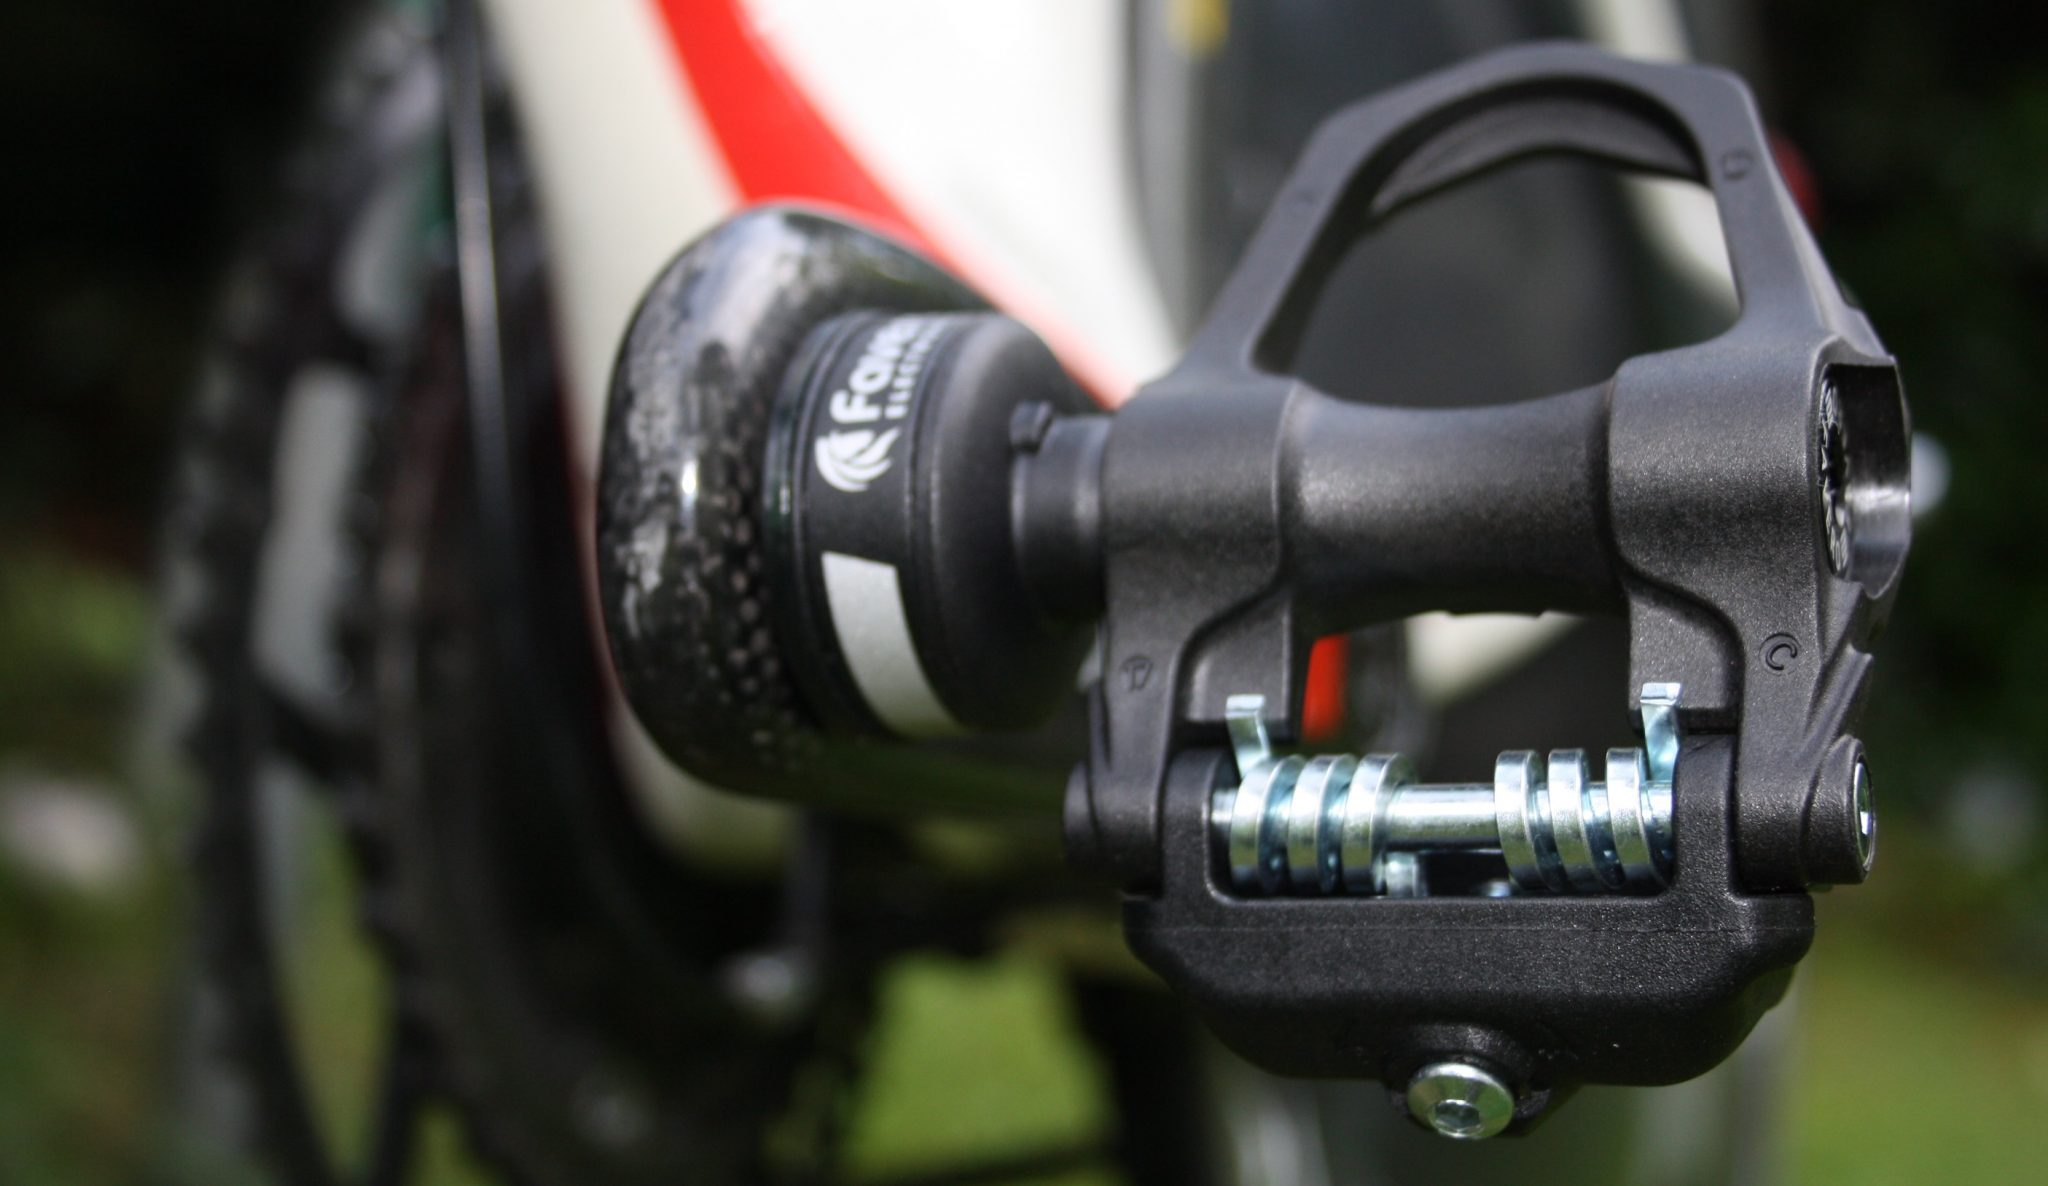 Favero ASSIOMA Power Meter Pedal Review